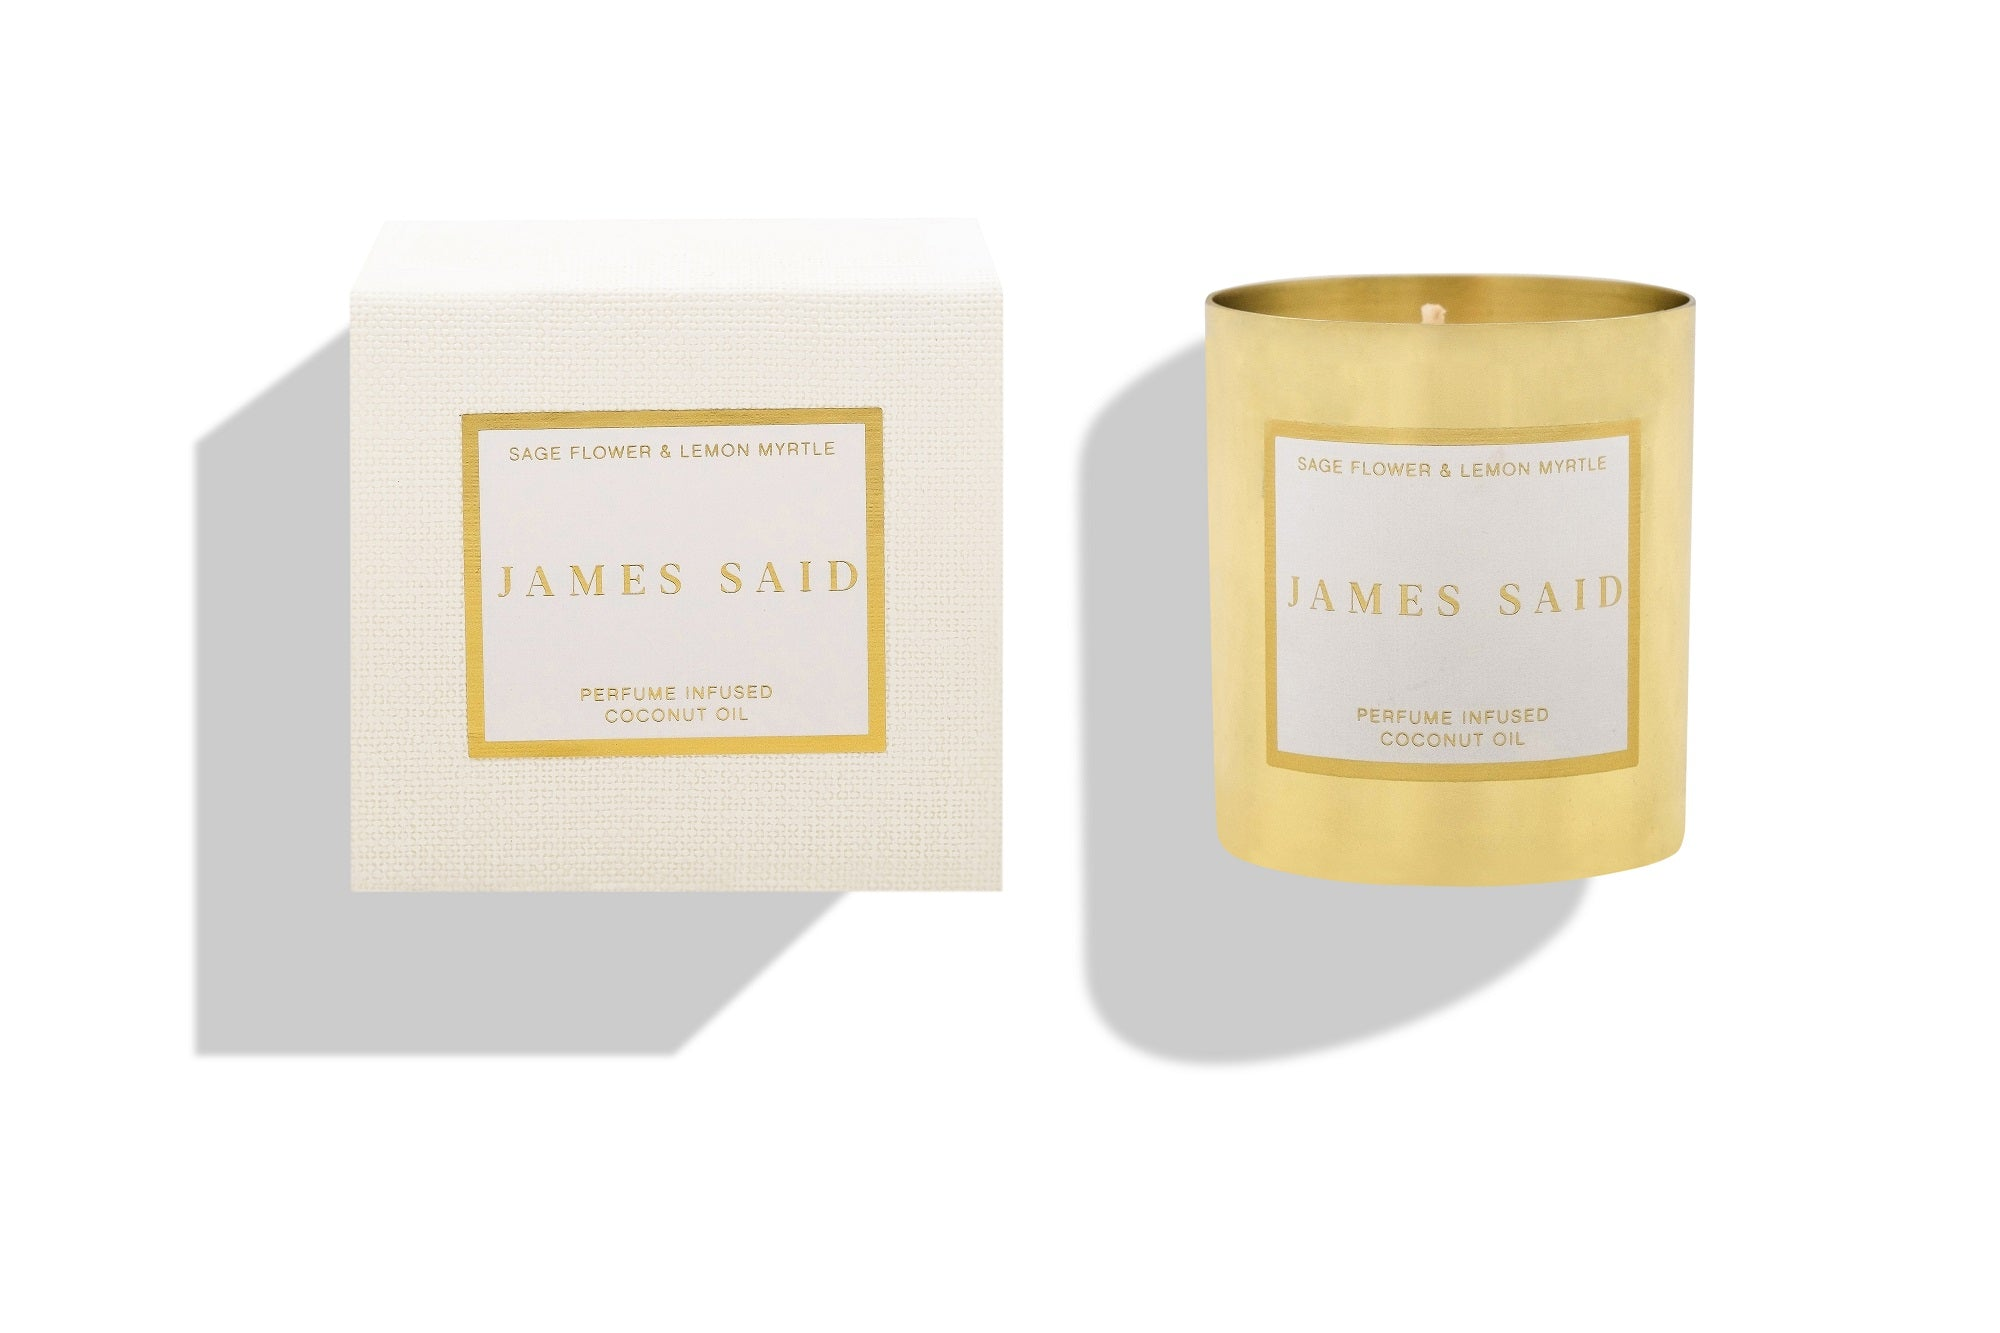 James Said Sage Flower & Lemon Myrtle Brass Candle - 350g